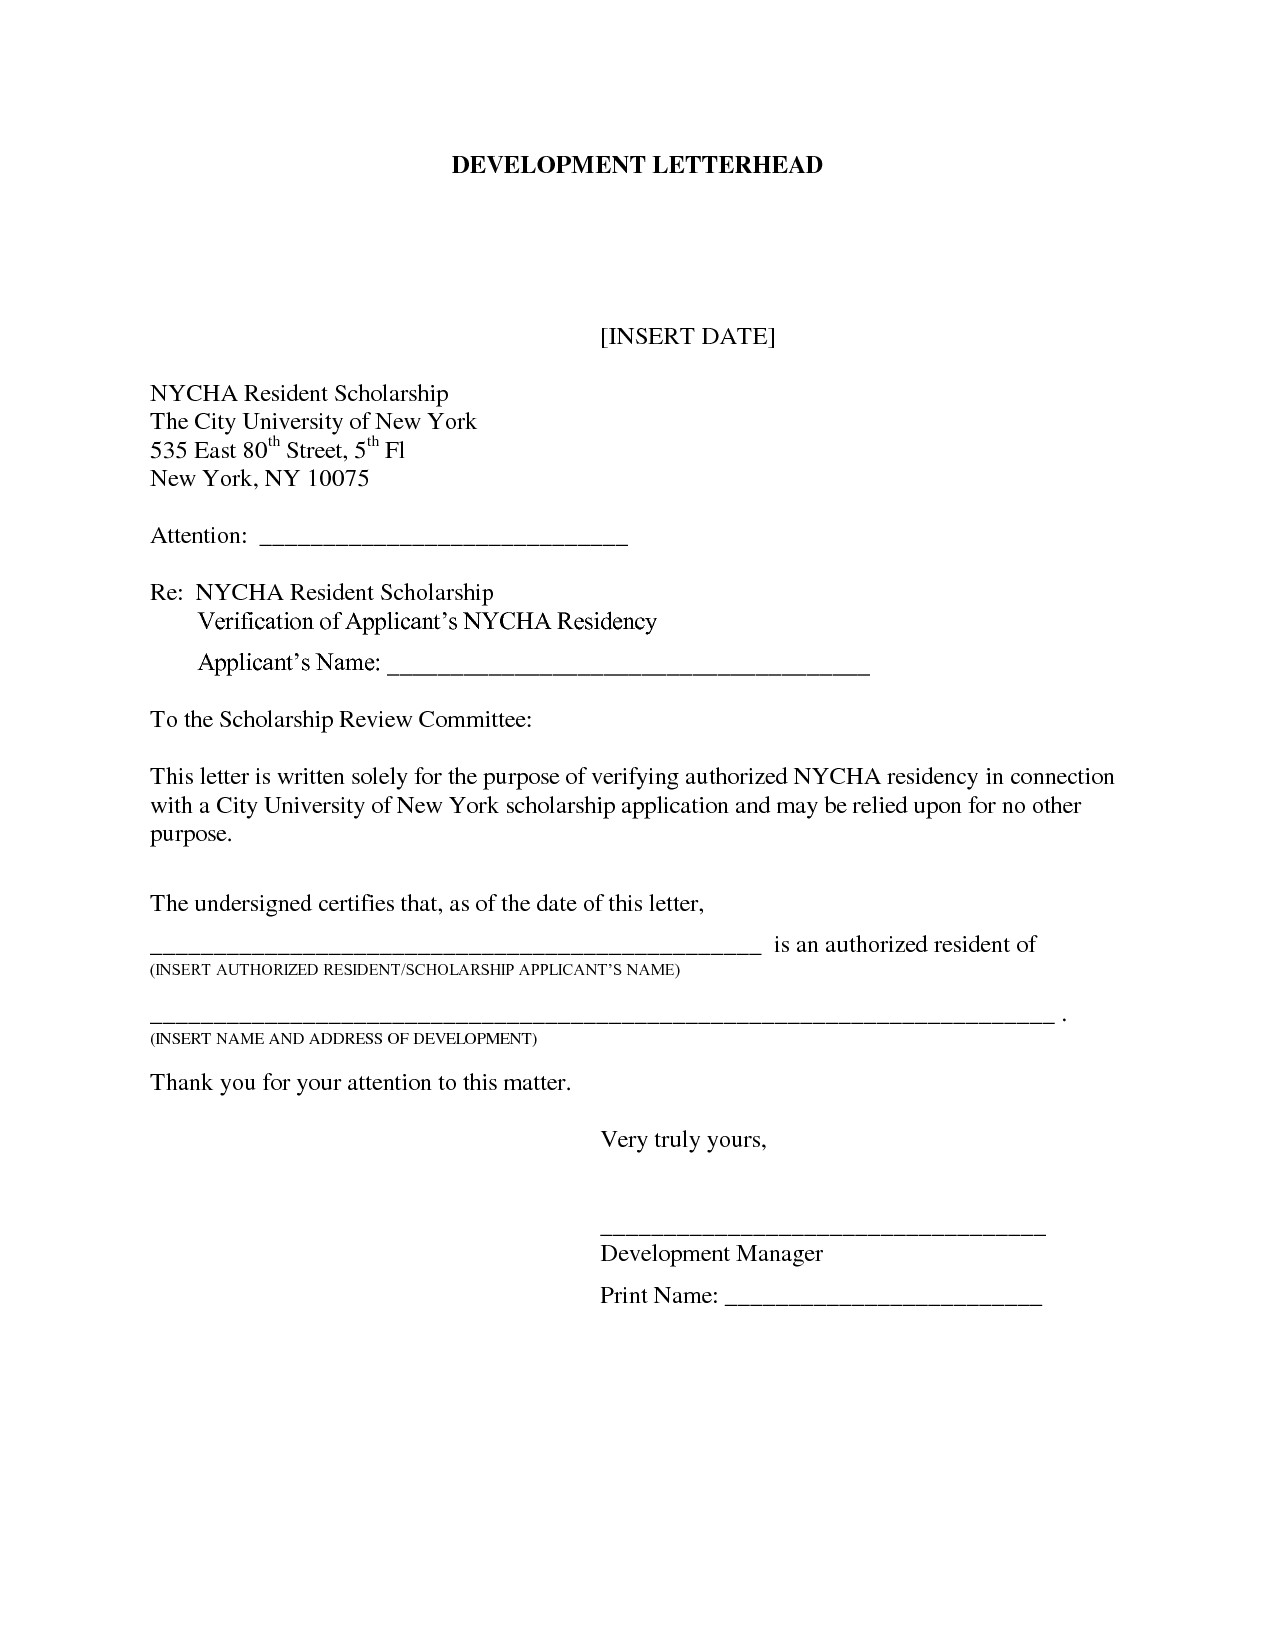 Printable Notarized Letter Of Residency Template from certificateof.com